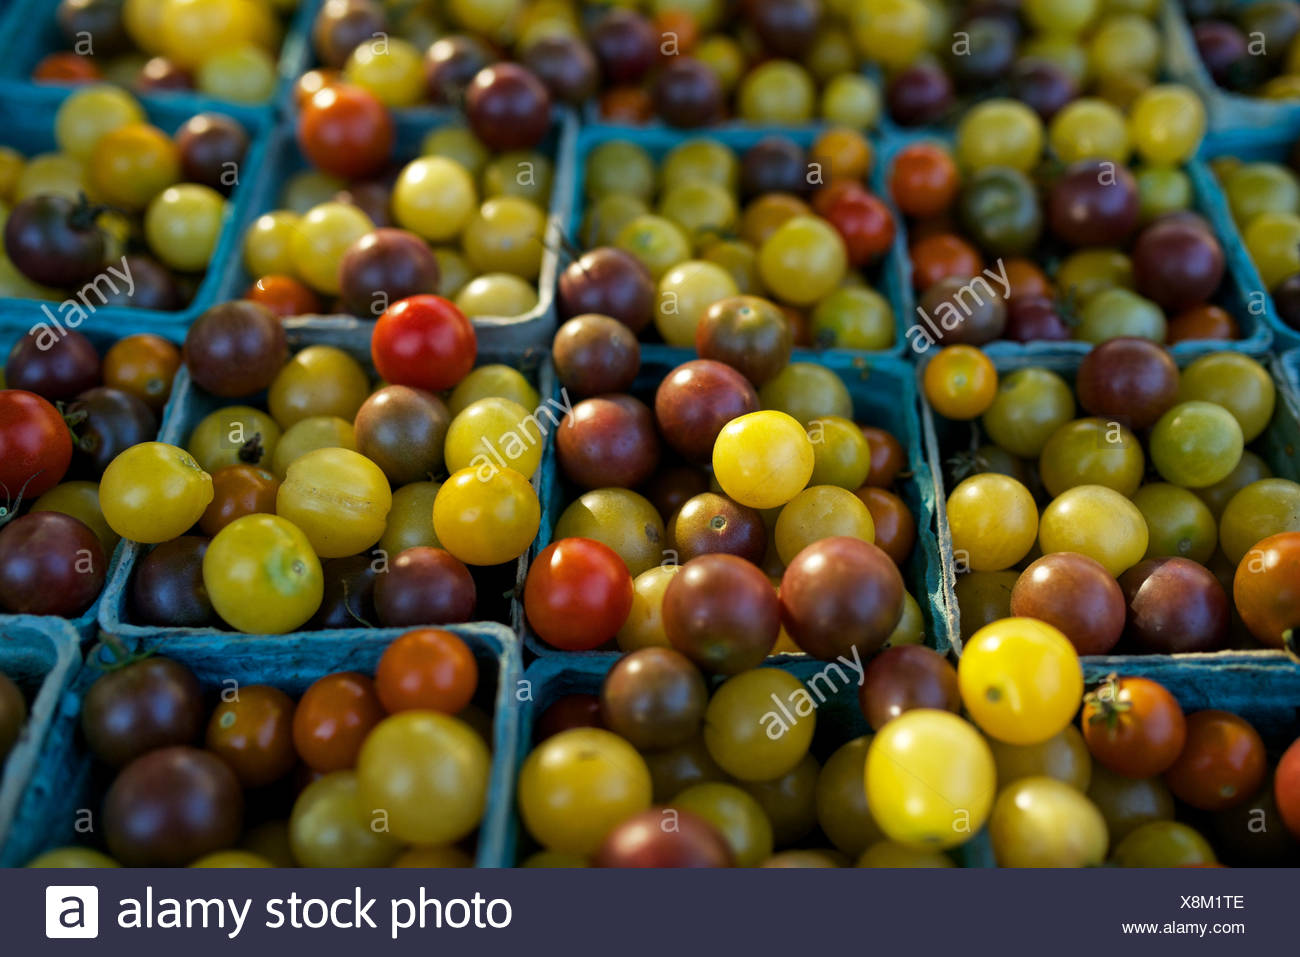 Produce at a farmers market on the Wisconsin Statehouse square in Madison, Wisconsin. - Stock Image